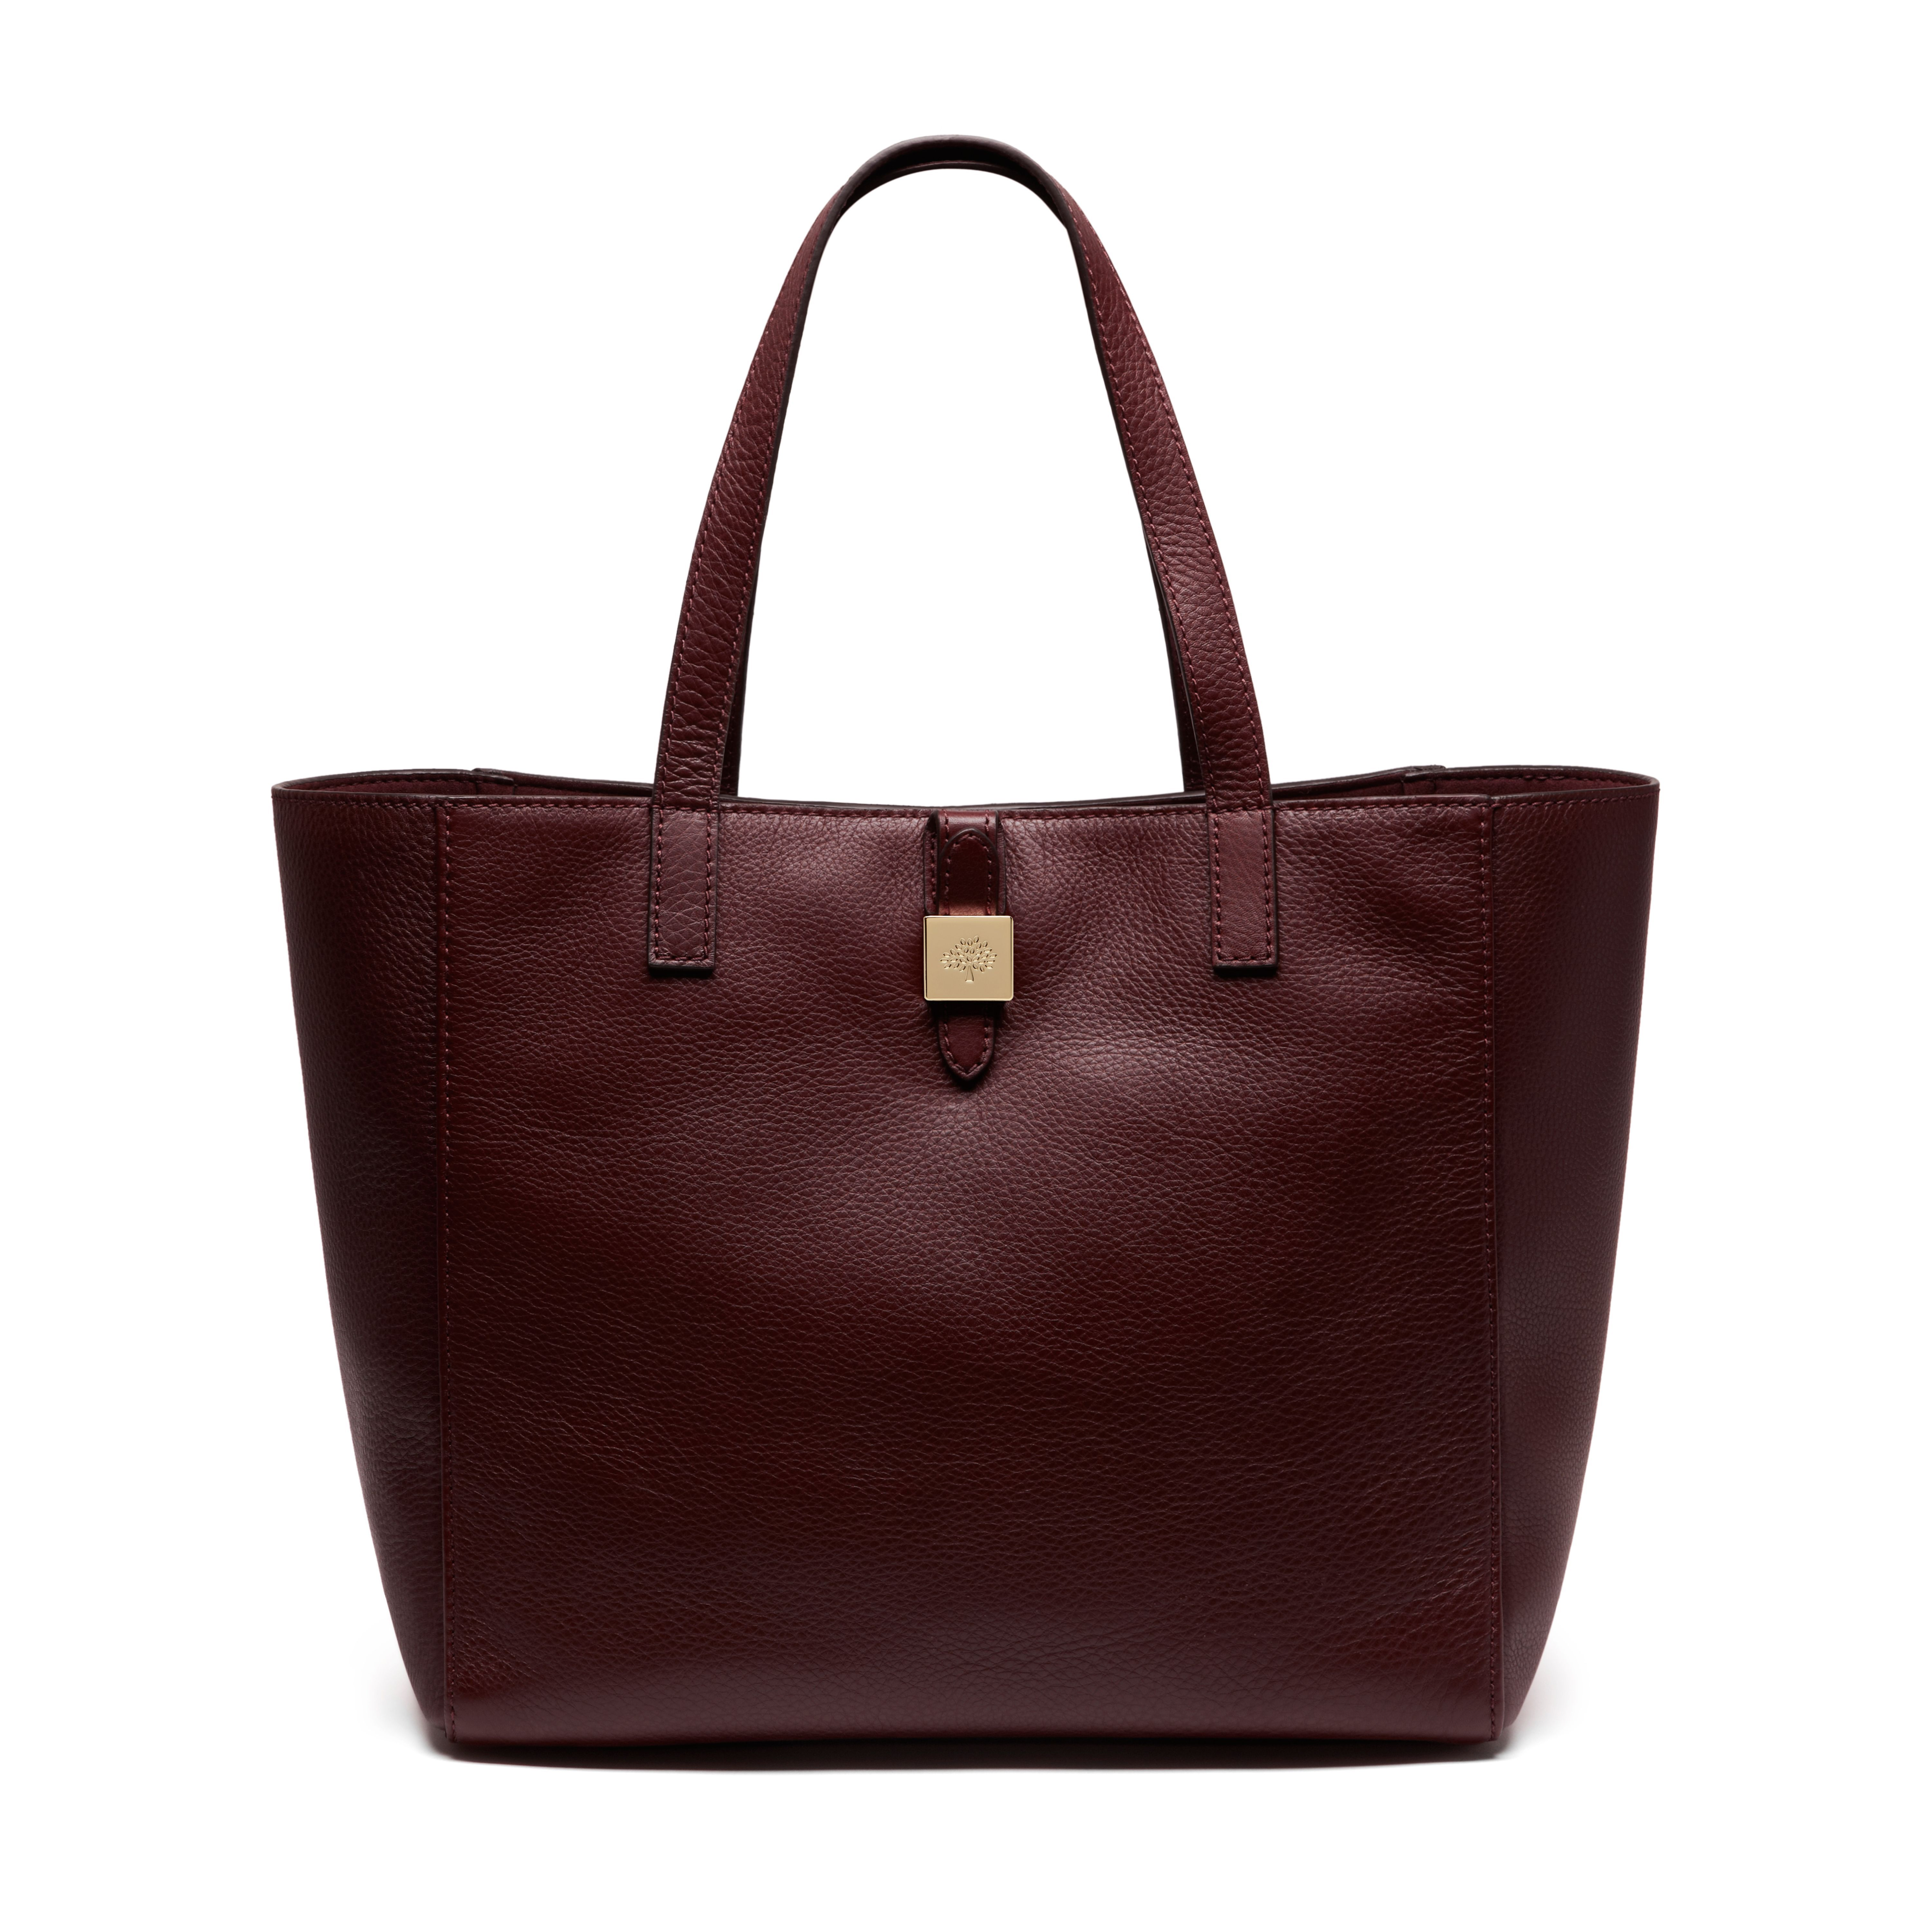 c2c28455dd ... order mulberry tessie tote in oxblood soft small grain c4b53 9957a